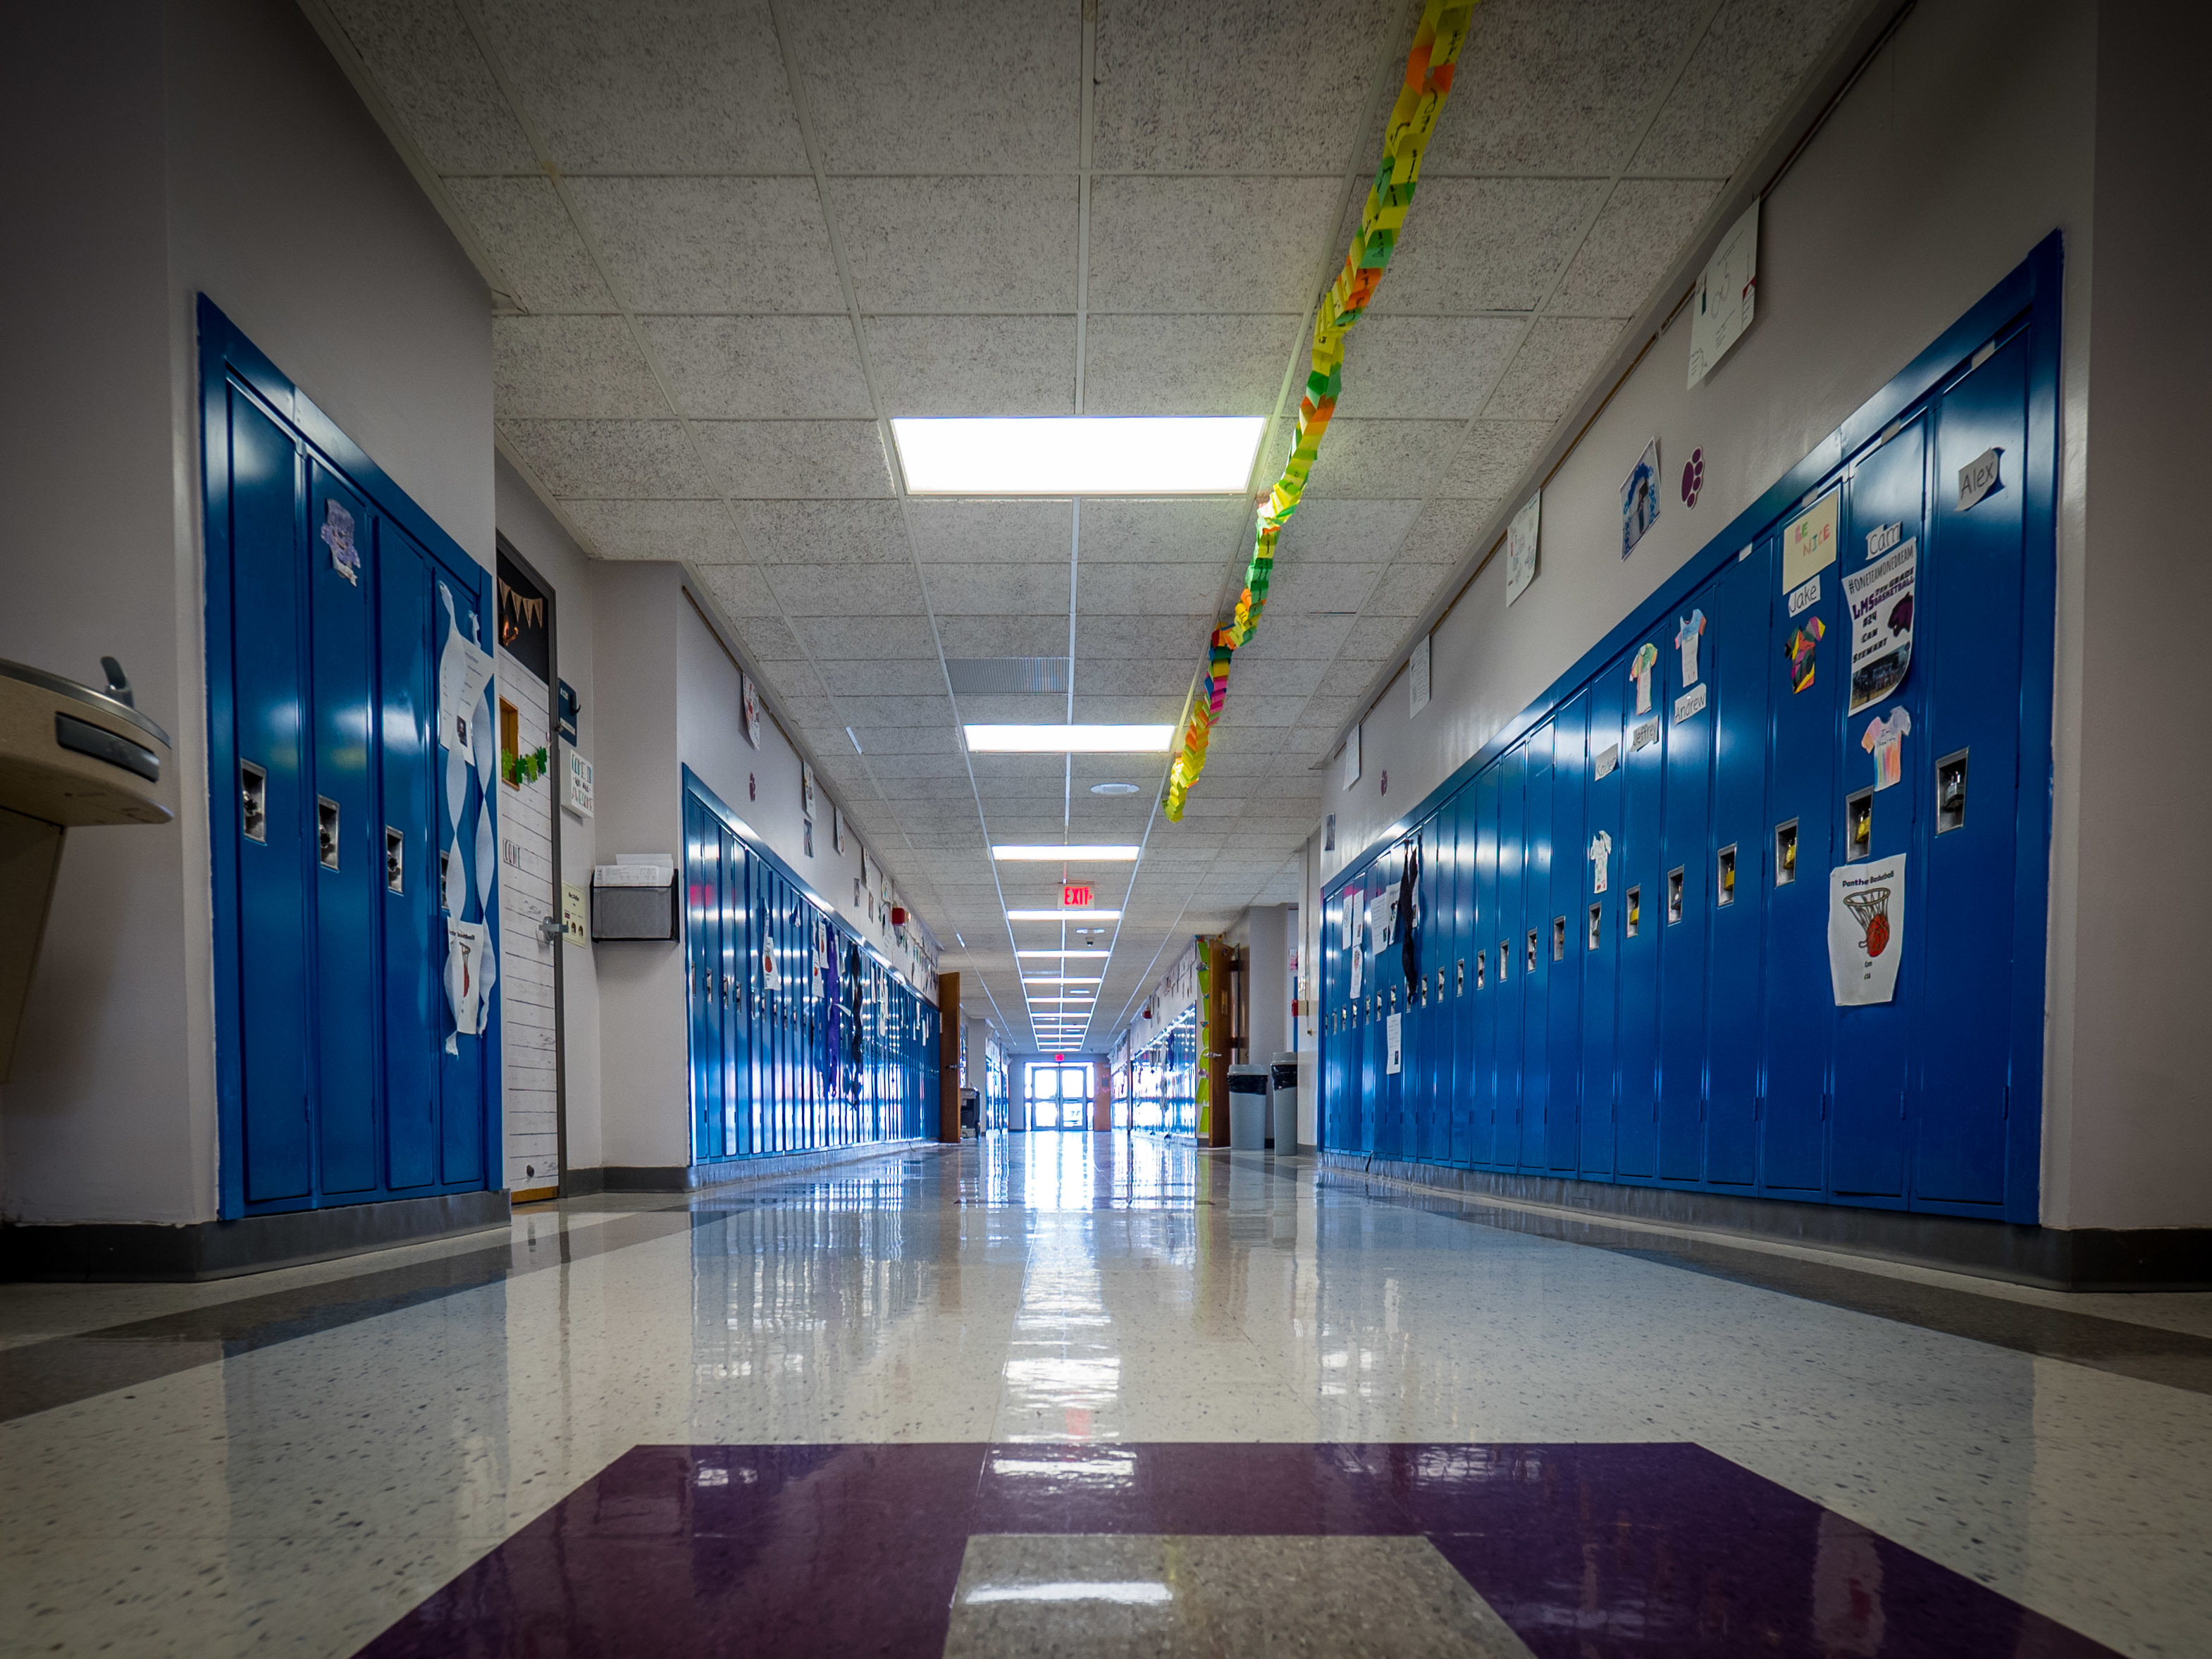 Image of ground floor hallway and lockers at Litchfield Middle School